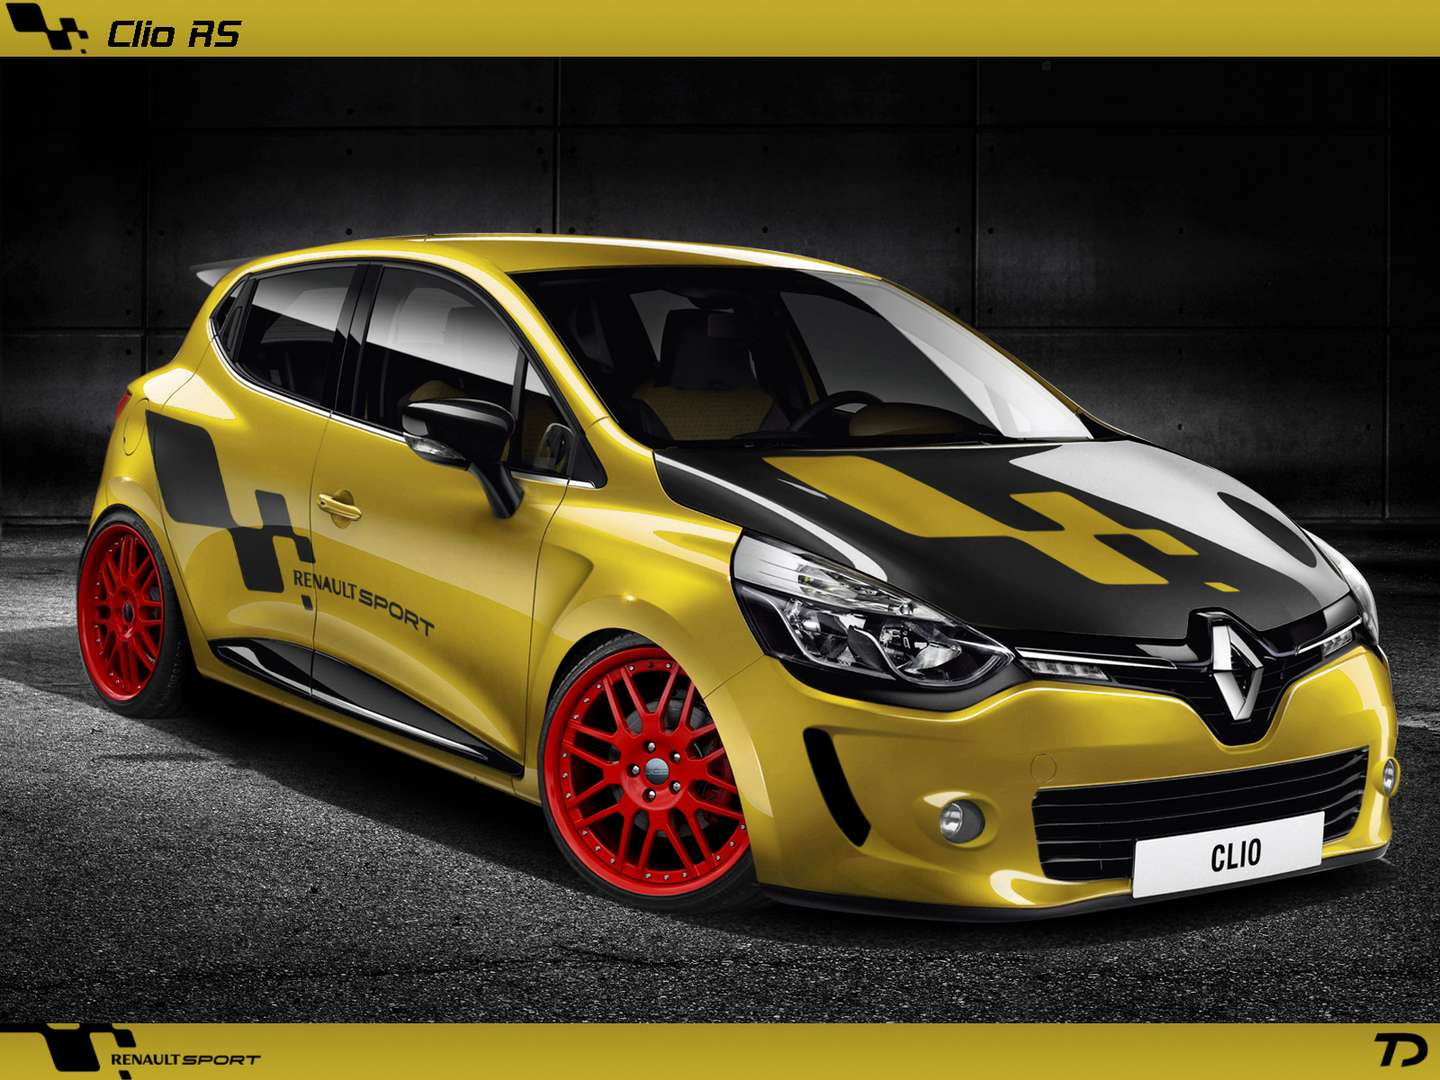 Renault Clio RS #8412138